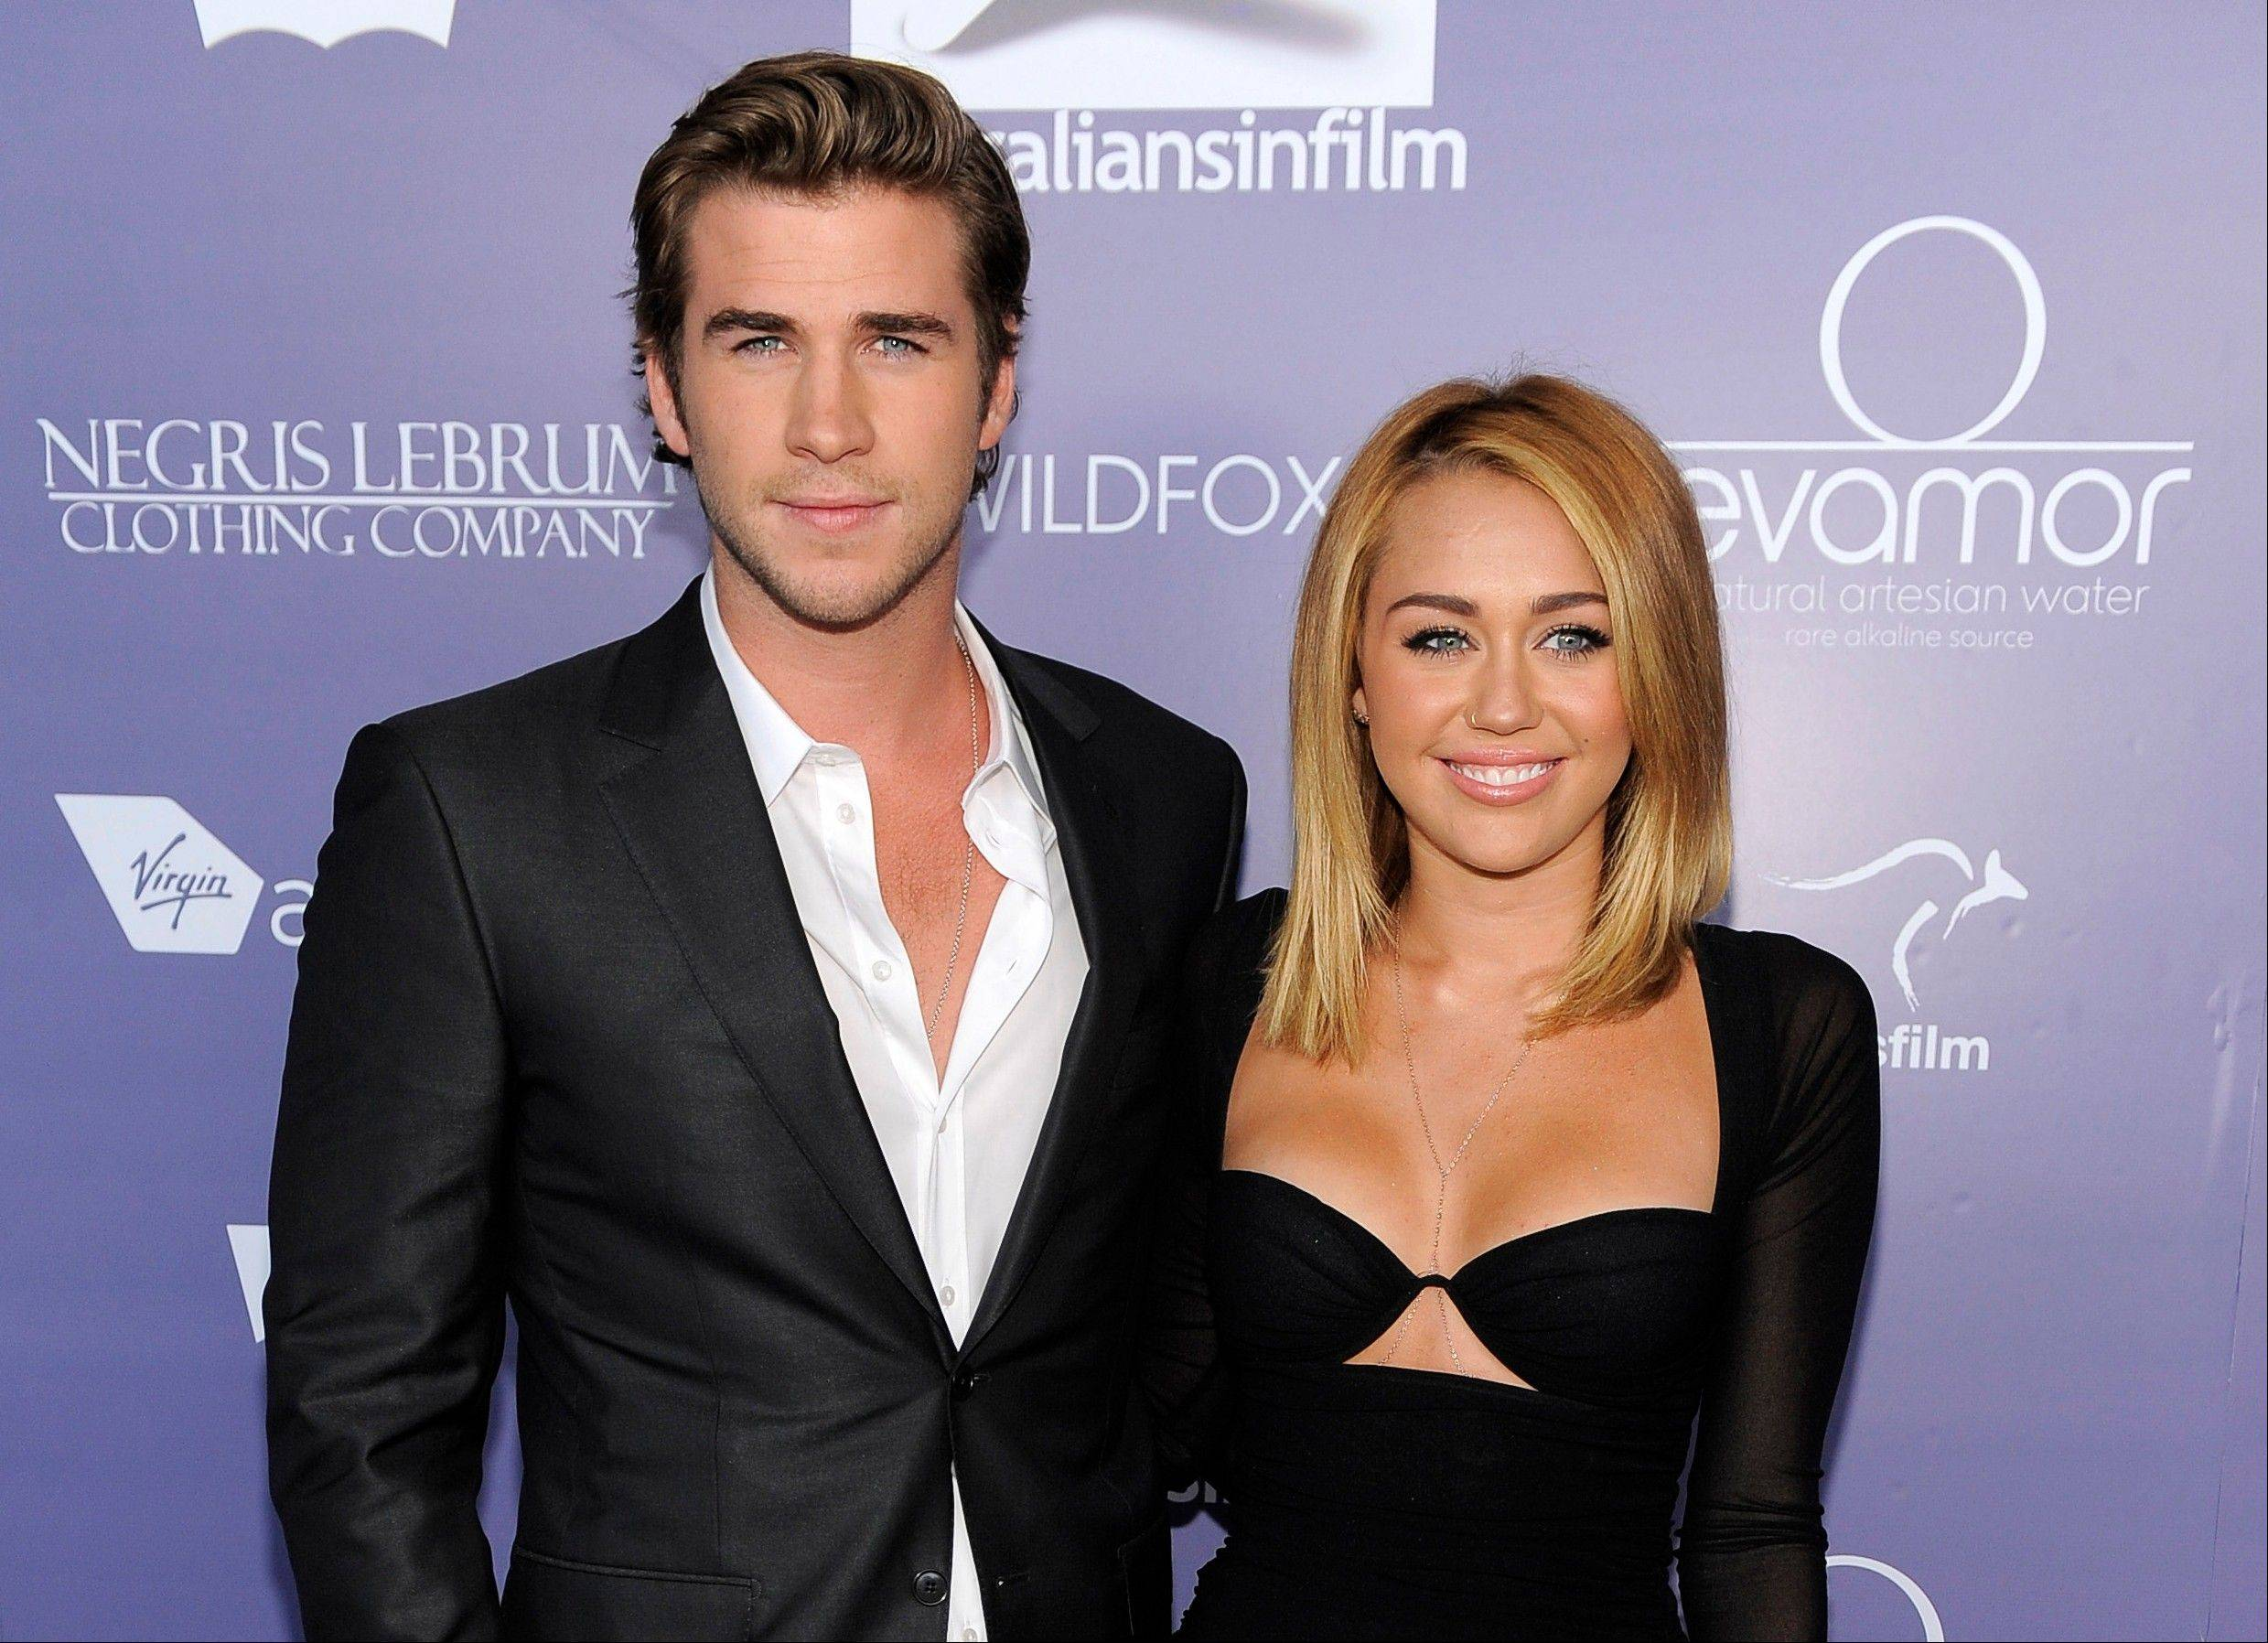 Liam Hemsworth and Miley Cyrus have called off their engagement, according to their representatives.